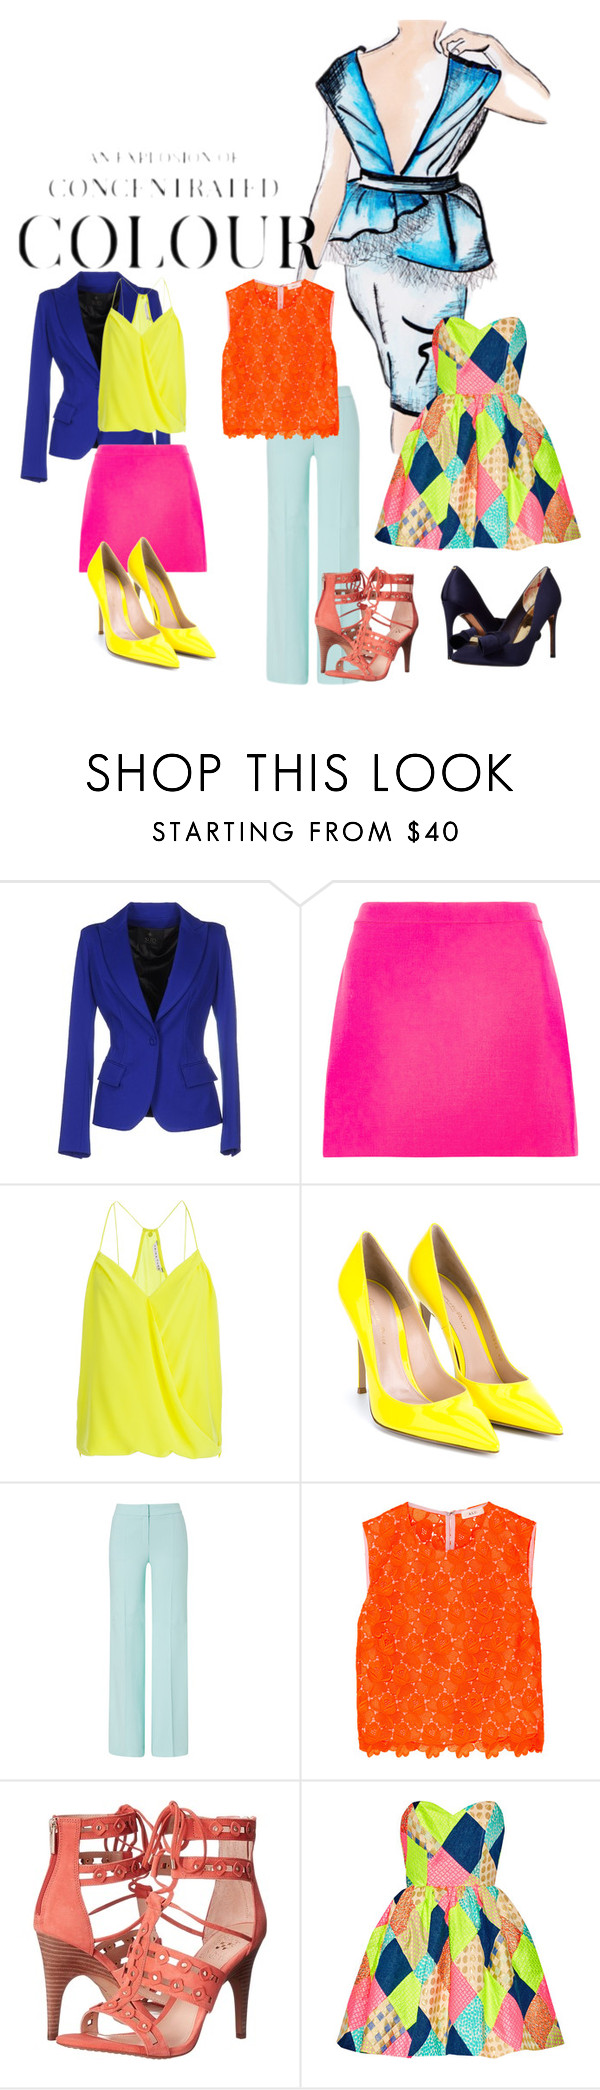 """""""A Splash Of Contrast"""" by lovelyds1986 on Polyvore featuring Gucci, Plein Sud, Versace, Trina Turk, Gianvito Rossi, ESCADA, A.L.C., Vince Camuto and Ted Baker"""